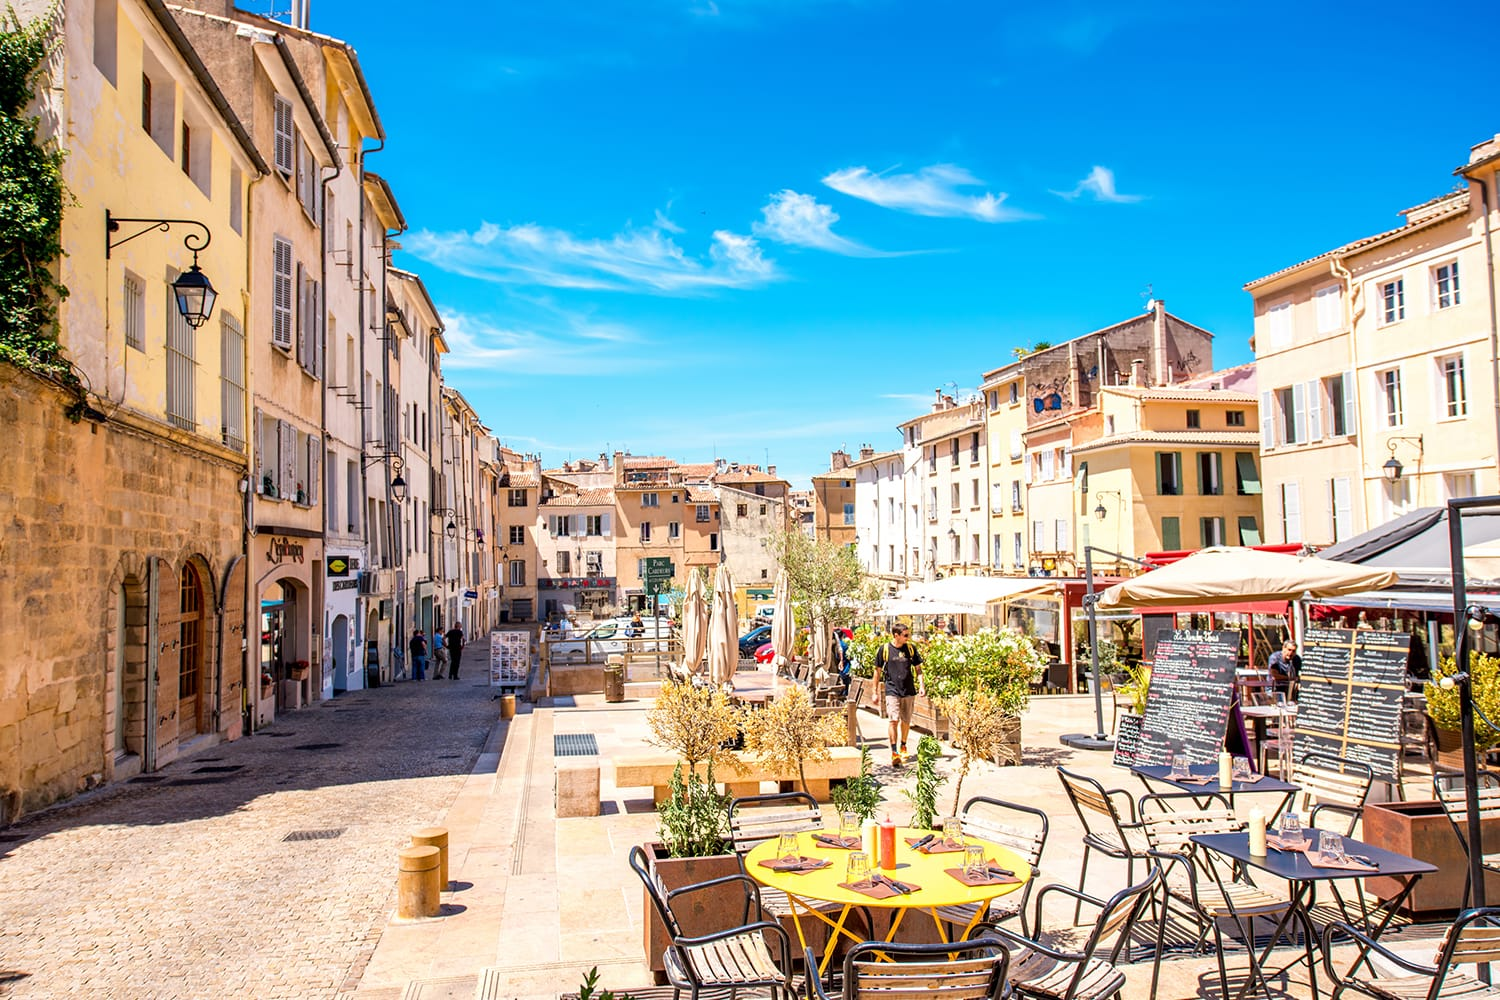 ardeurs square with cafes and restaurants in the old town of Aix-en-Provence city on the south of France.